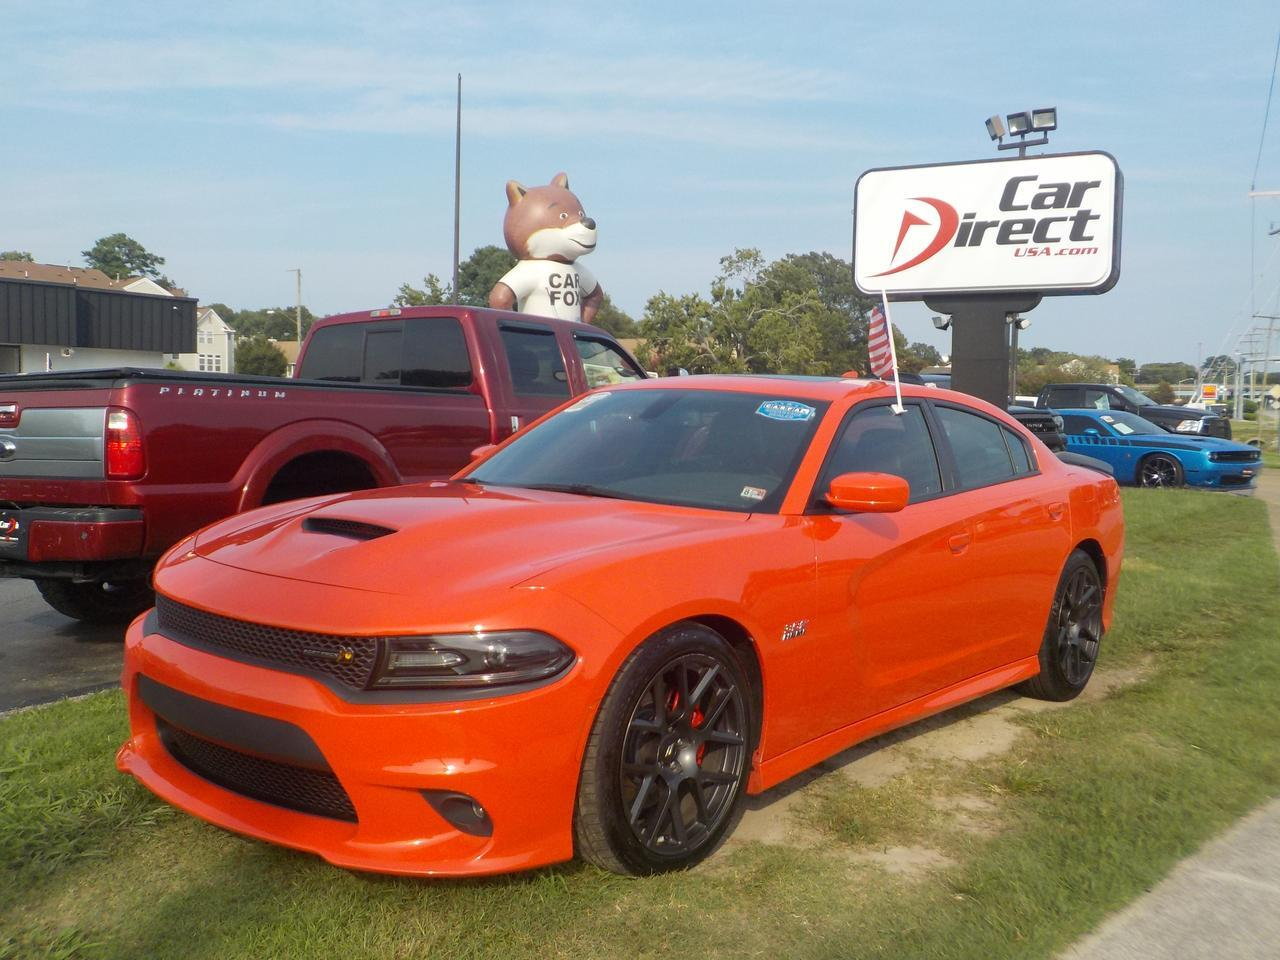 2017 DODGE CHARGER R/T SCAT PACK, BEATS SOUND SYSTEM, REAR SPOILER, LEATHER/SUEDE INTERIOR, NAVIGATION SYSTEM, SUNROOF!